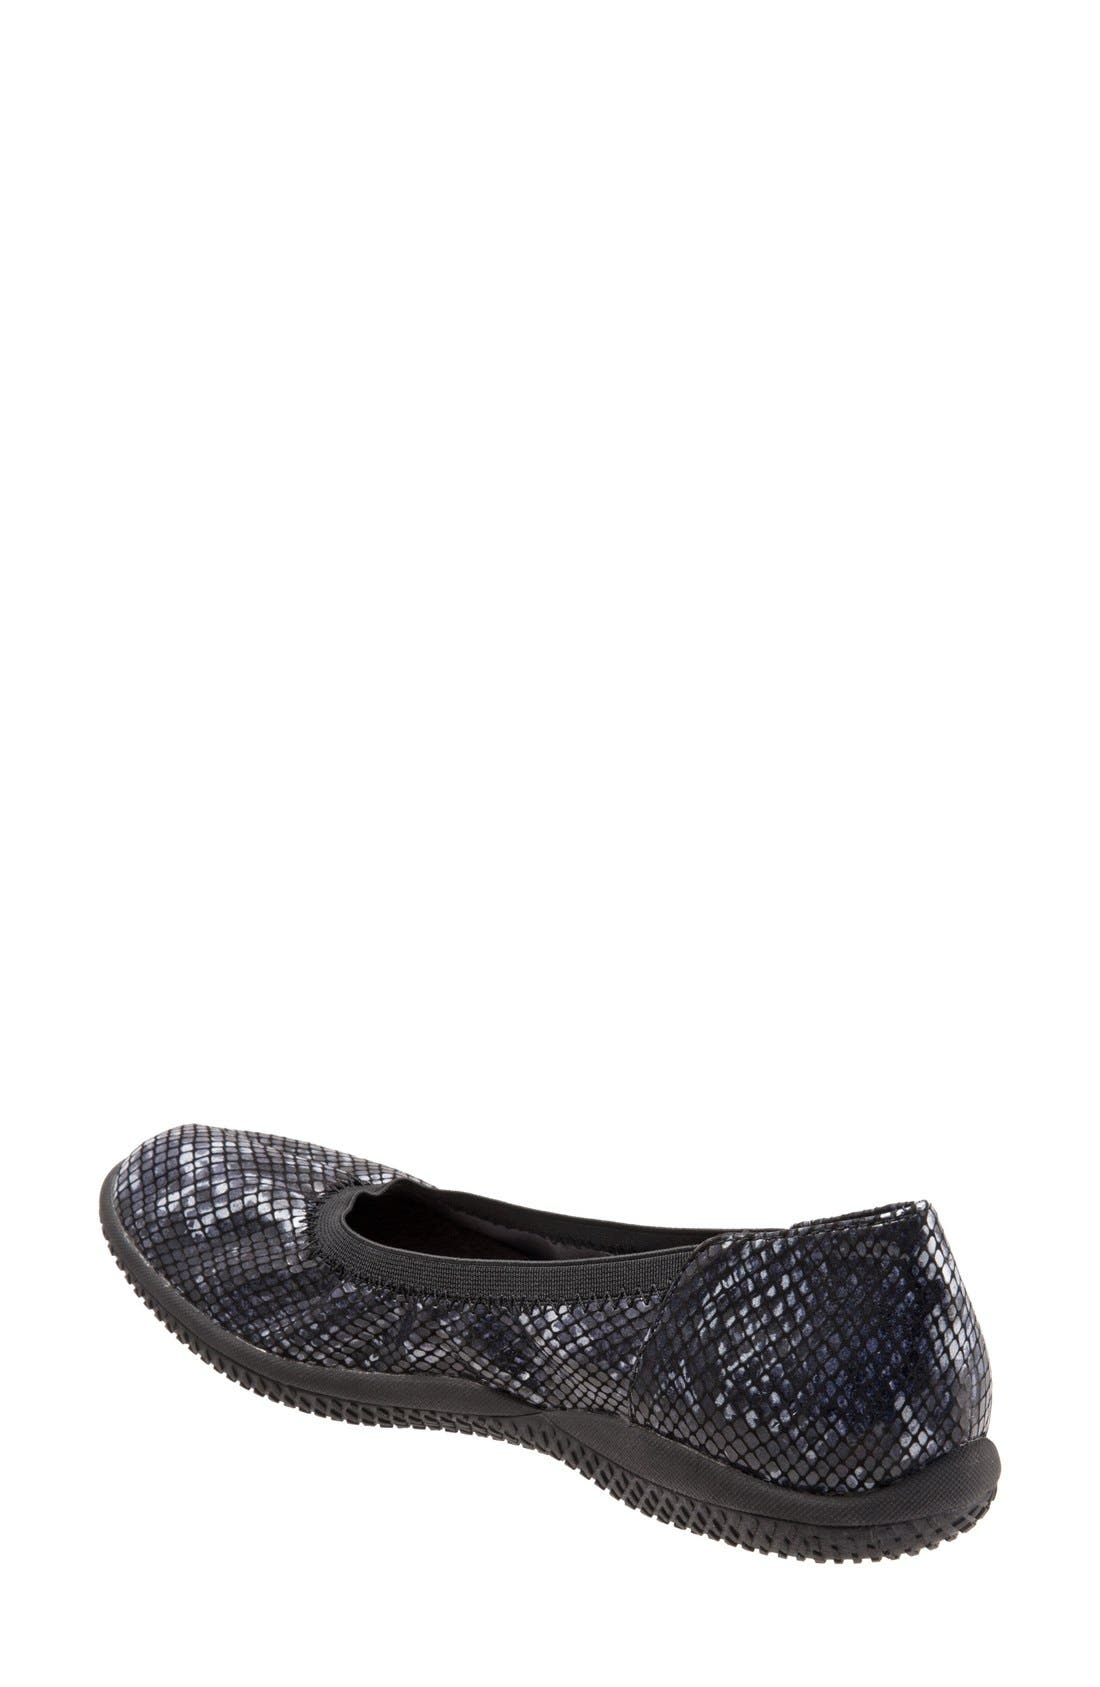 'Hampshire' Dot Perforated Ballet Flat,                             Alternate thumbnail 3, color,                             Black Python Print Leather